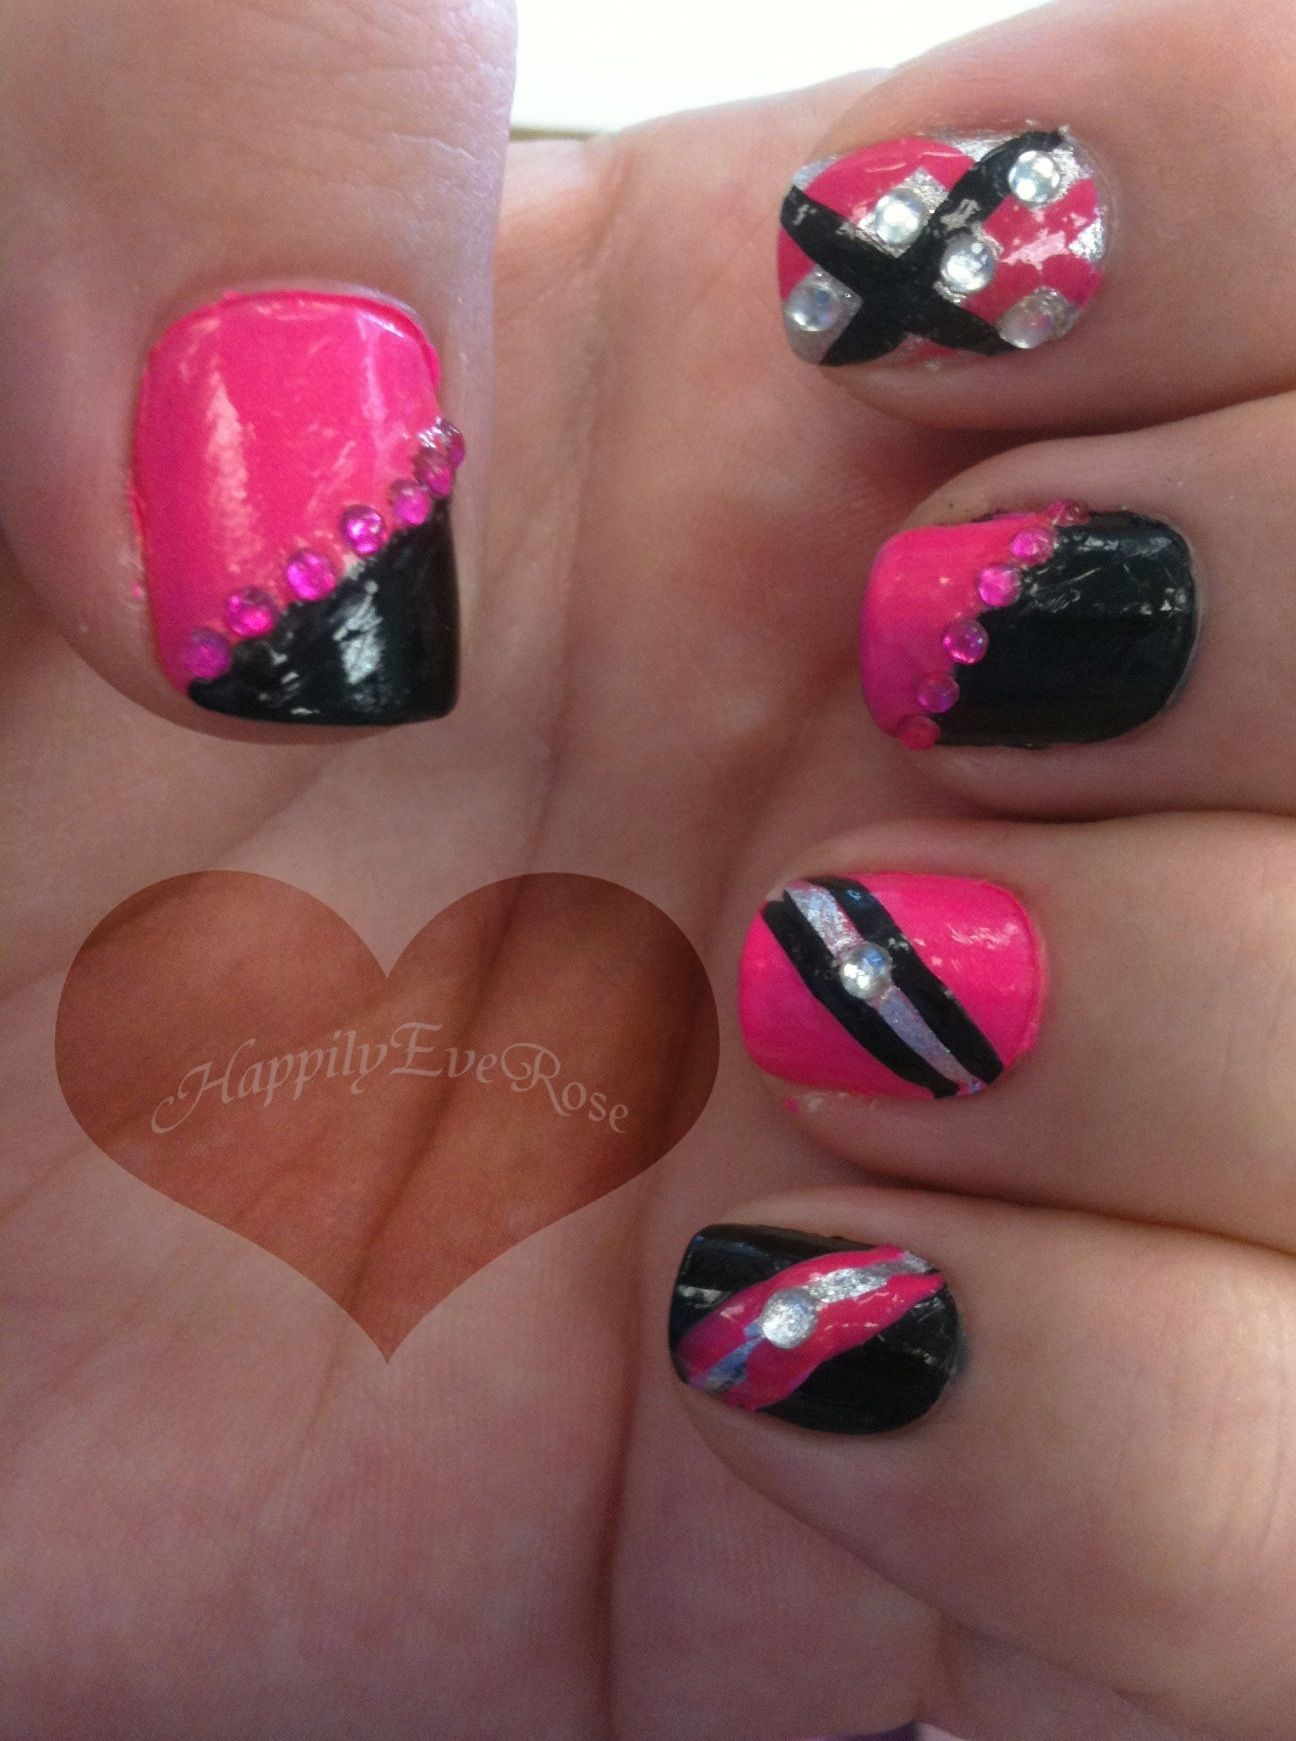 Hot pink black nail design inspired by queenofblending with hot pink black nail design inspired by queenofblending with rhinestones and stripes prinsesfo Choice Image